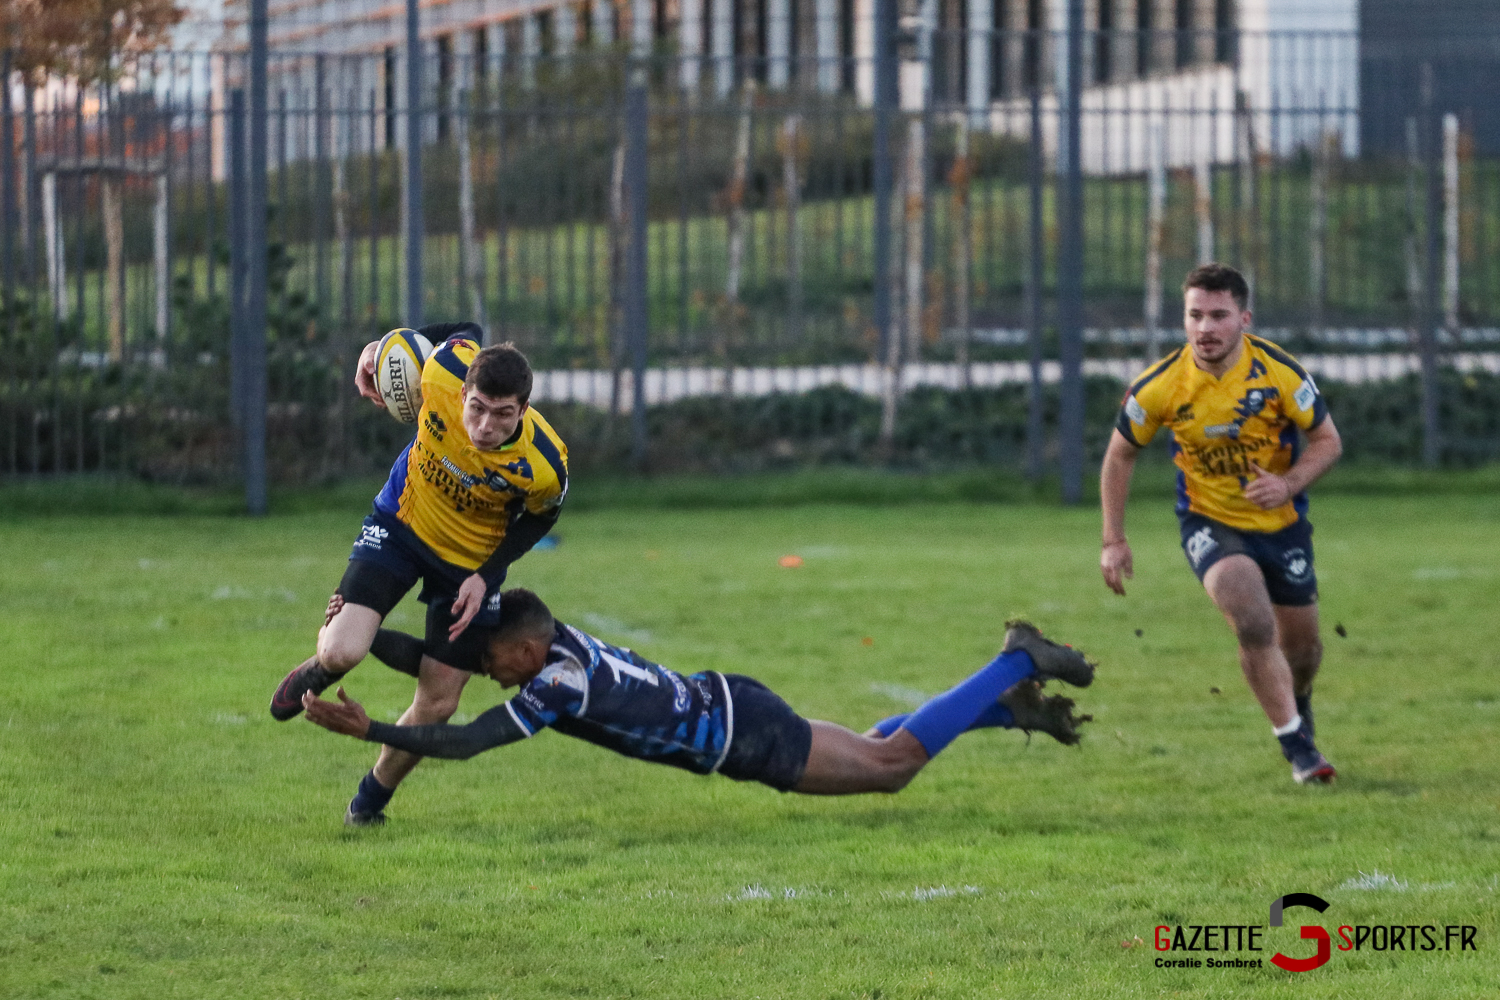 Rugby Rca Vs Epernay Gazettesports Coralie Sombret 41